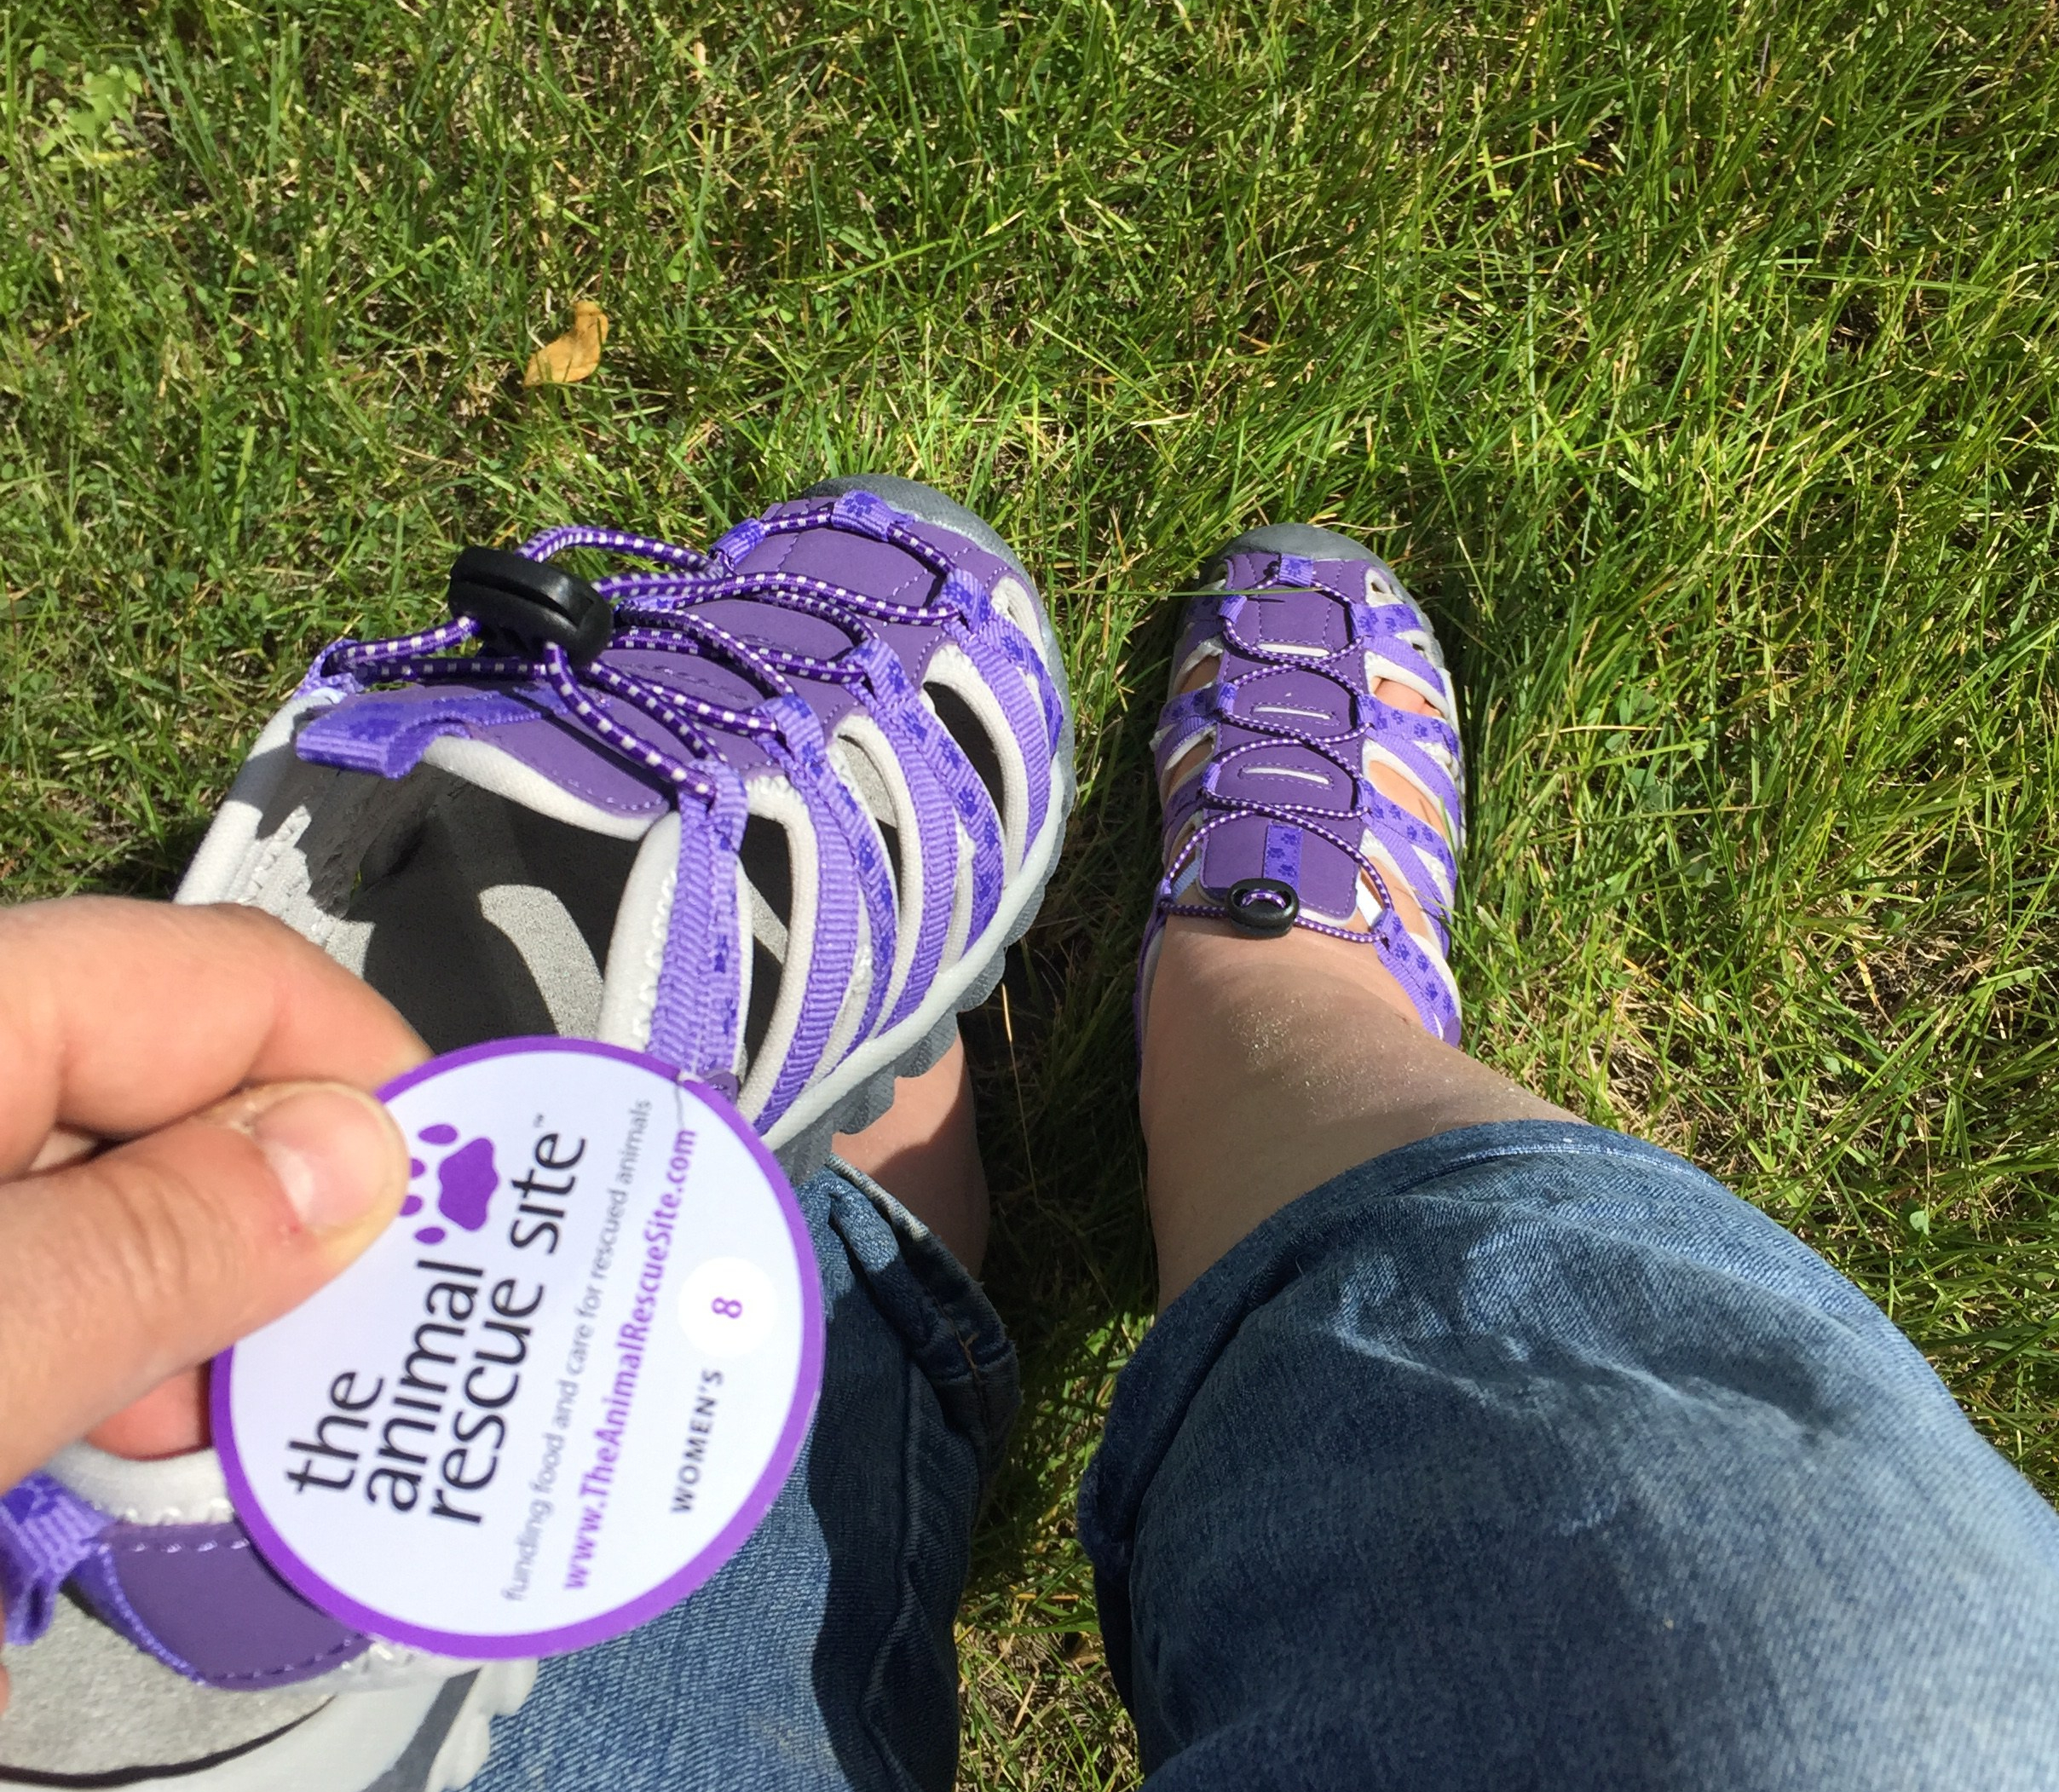 New Gardening Shoes from Animal Rescue Site